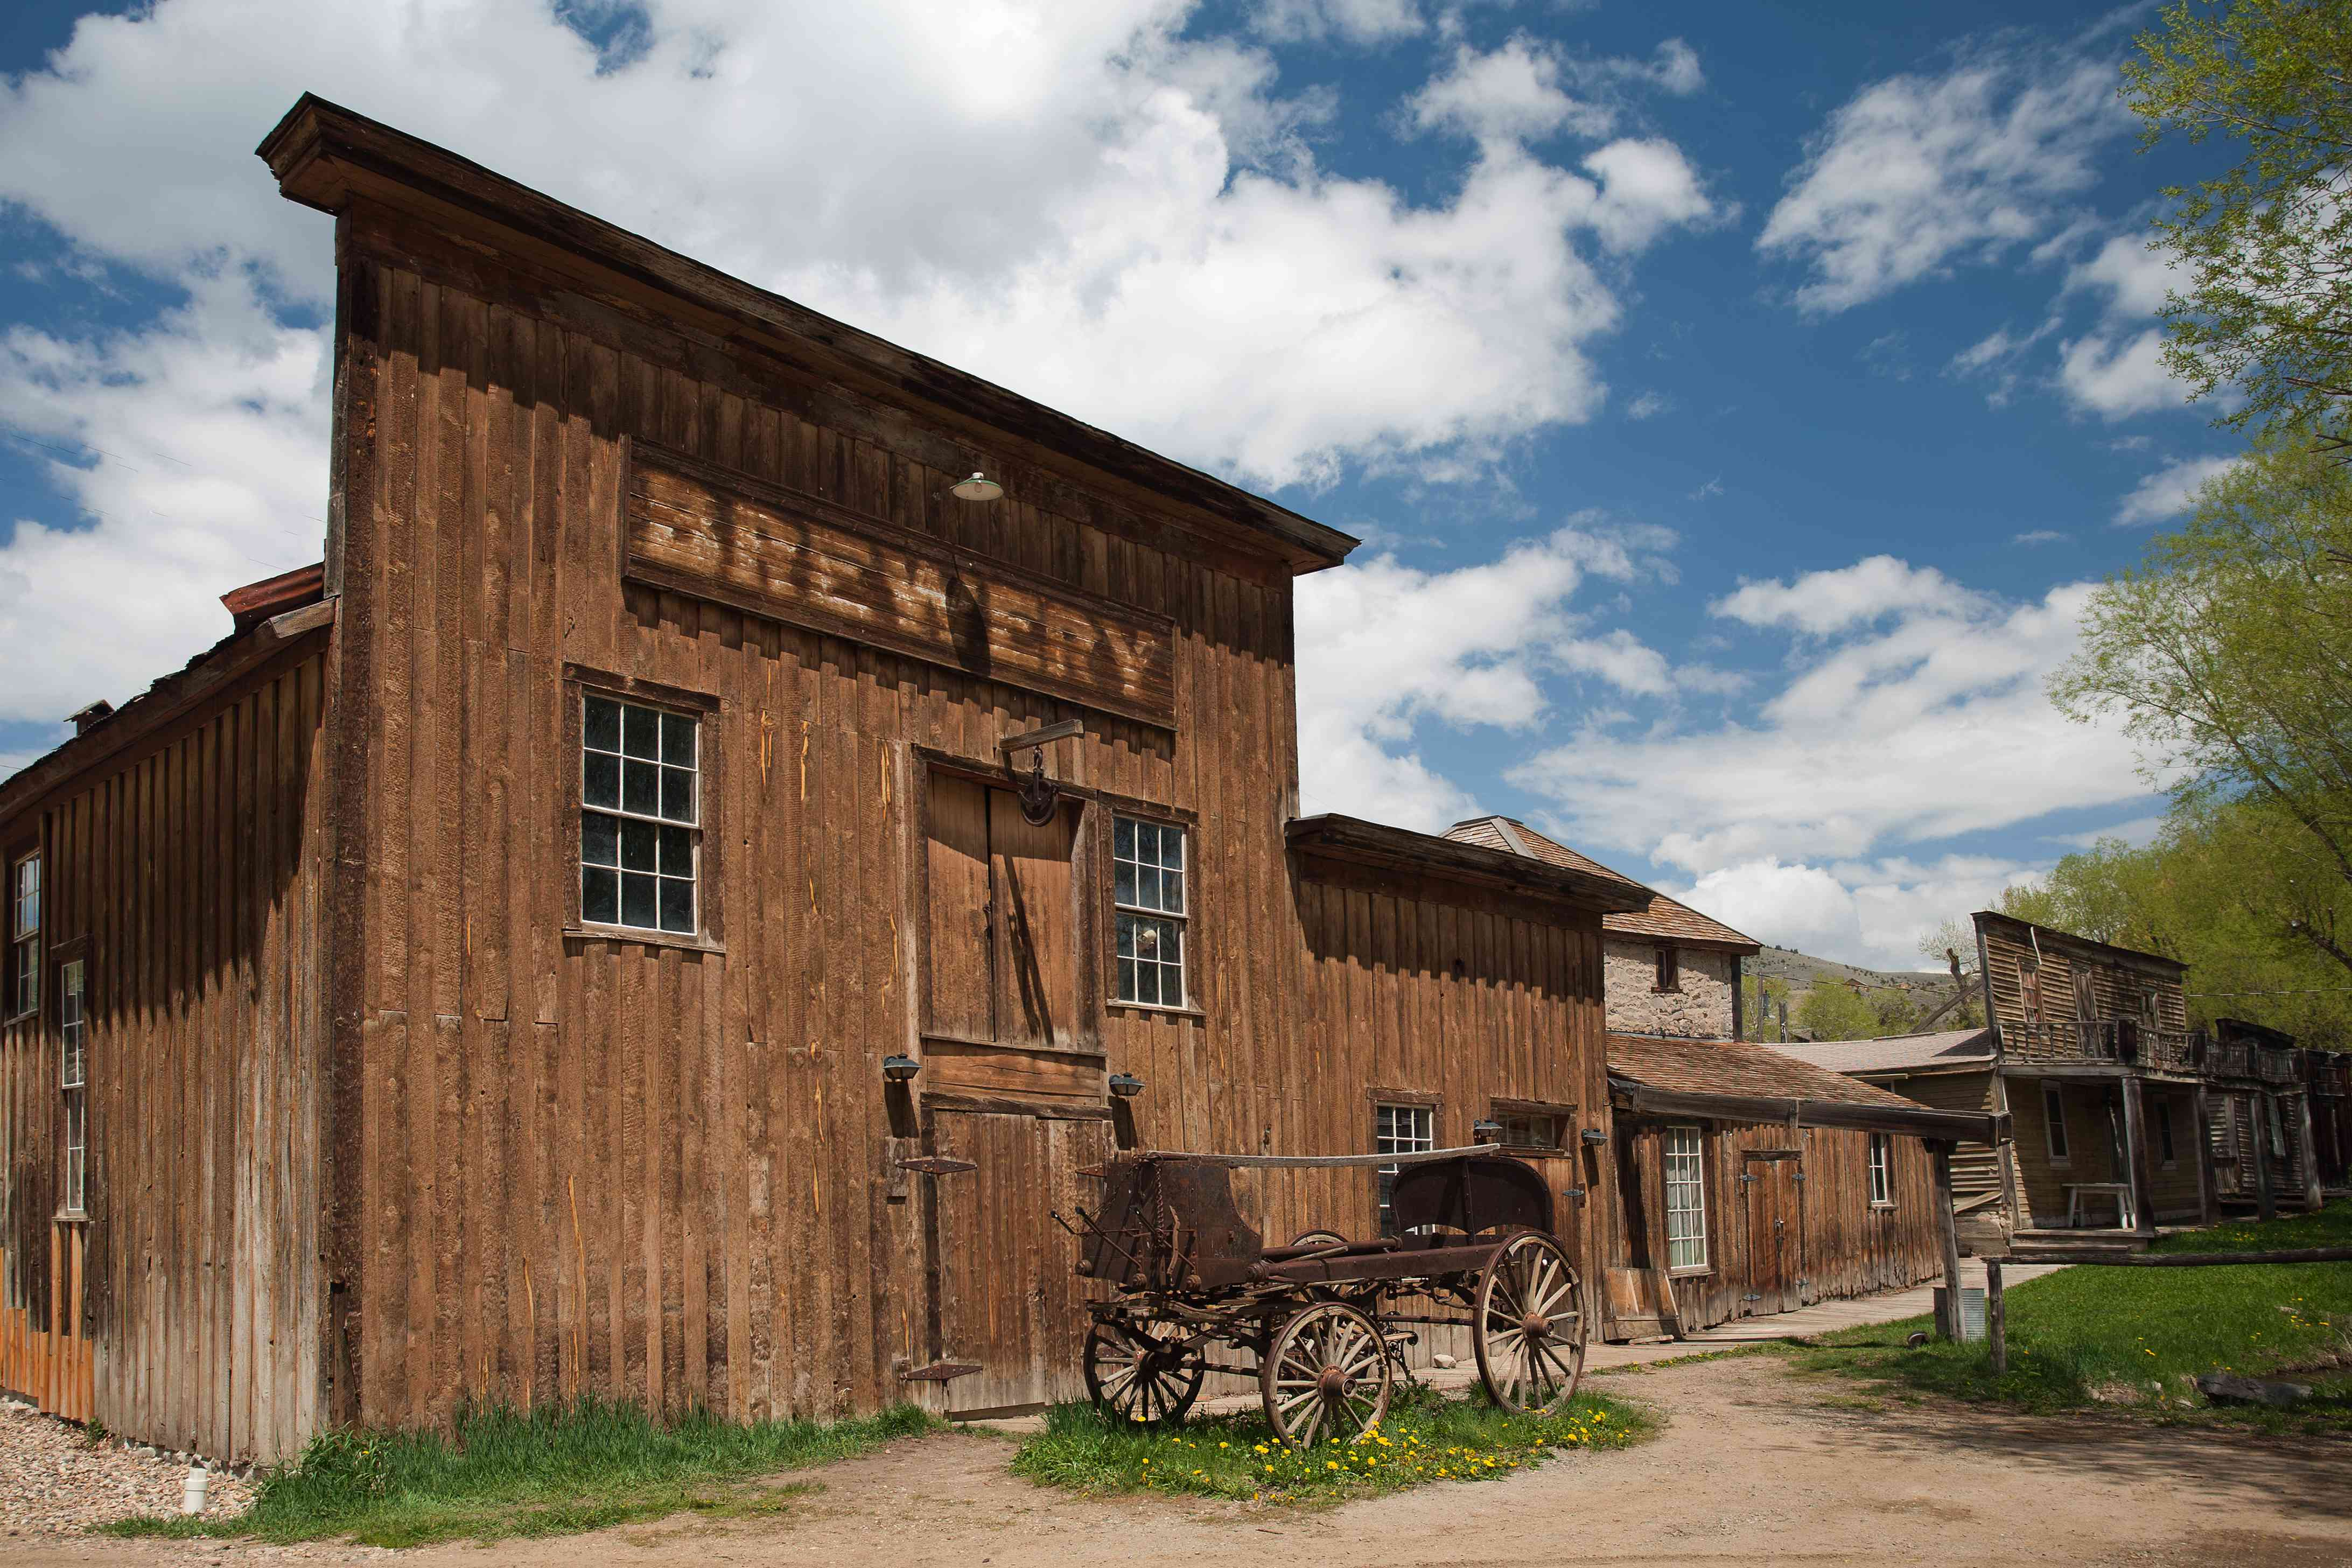 Old-style brewery and horse-drawn cart in Virginia City